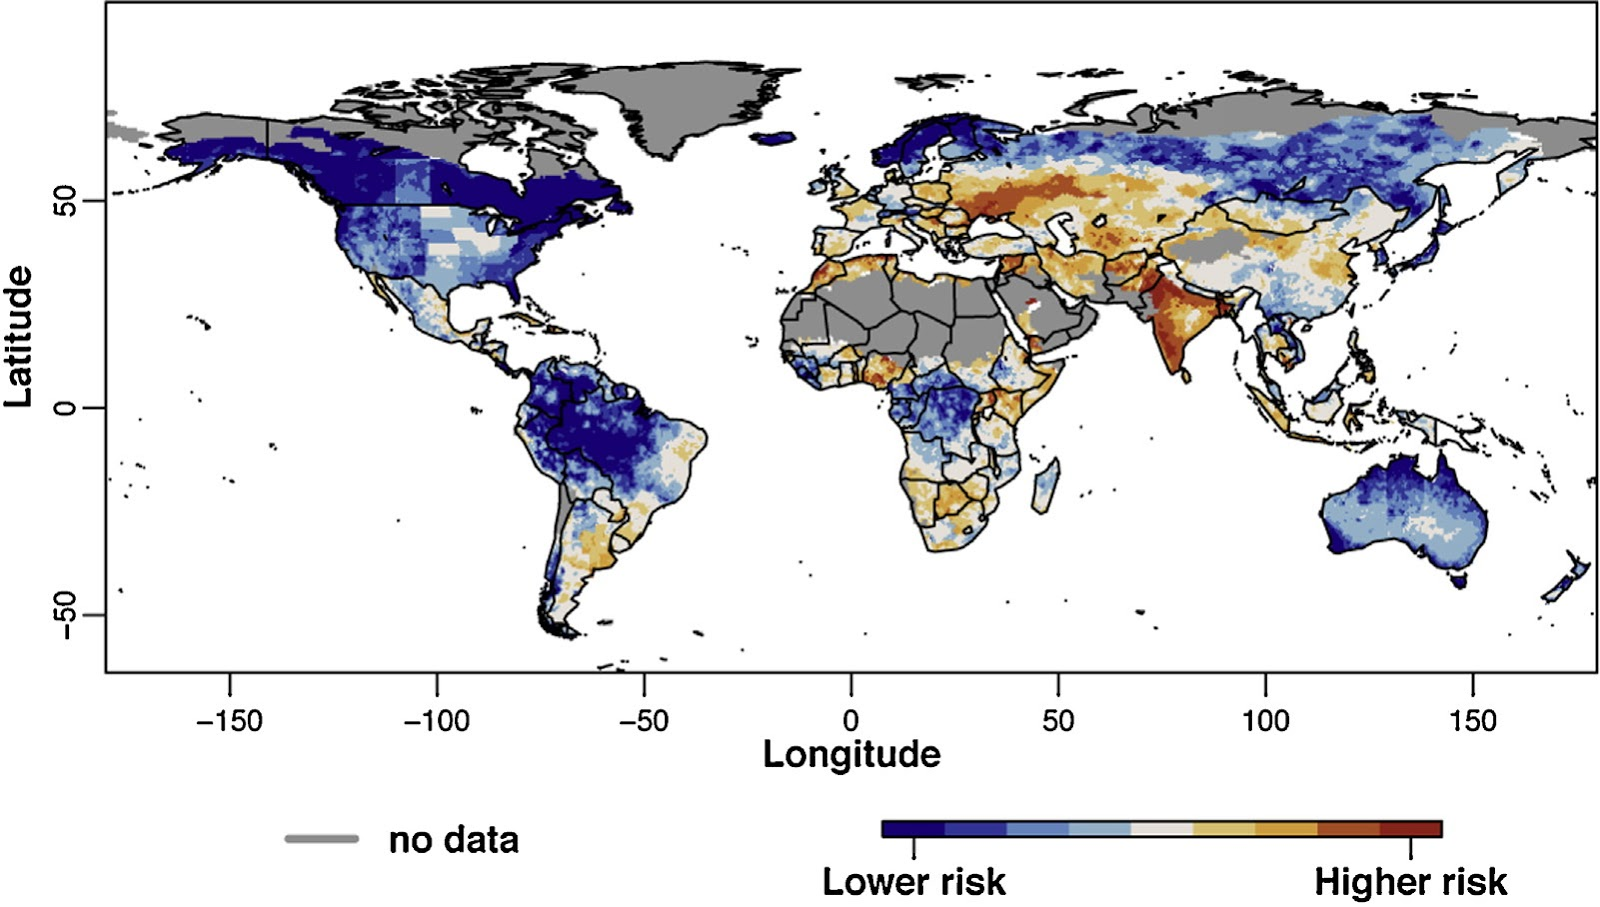 Global map of drought risk, from new JRC study